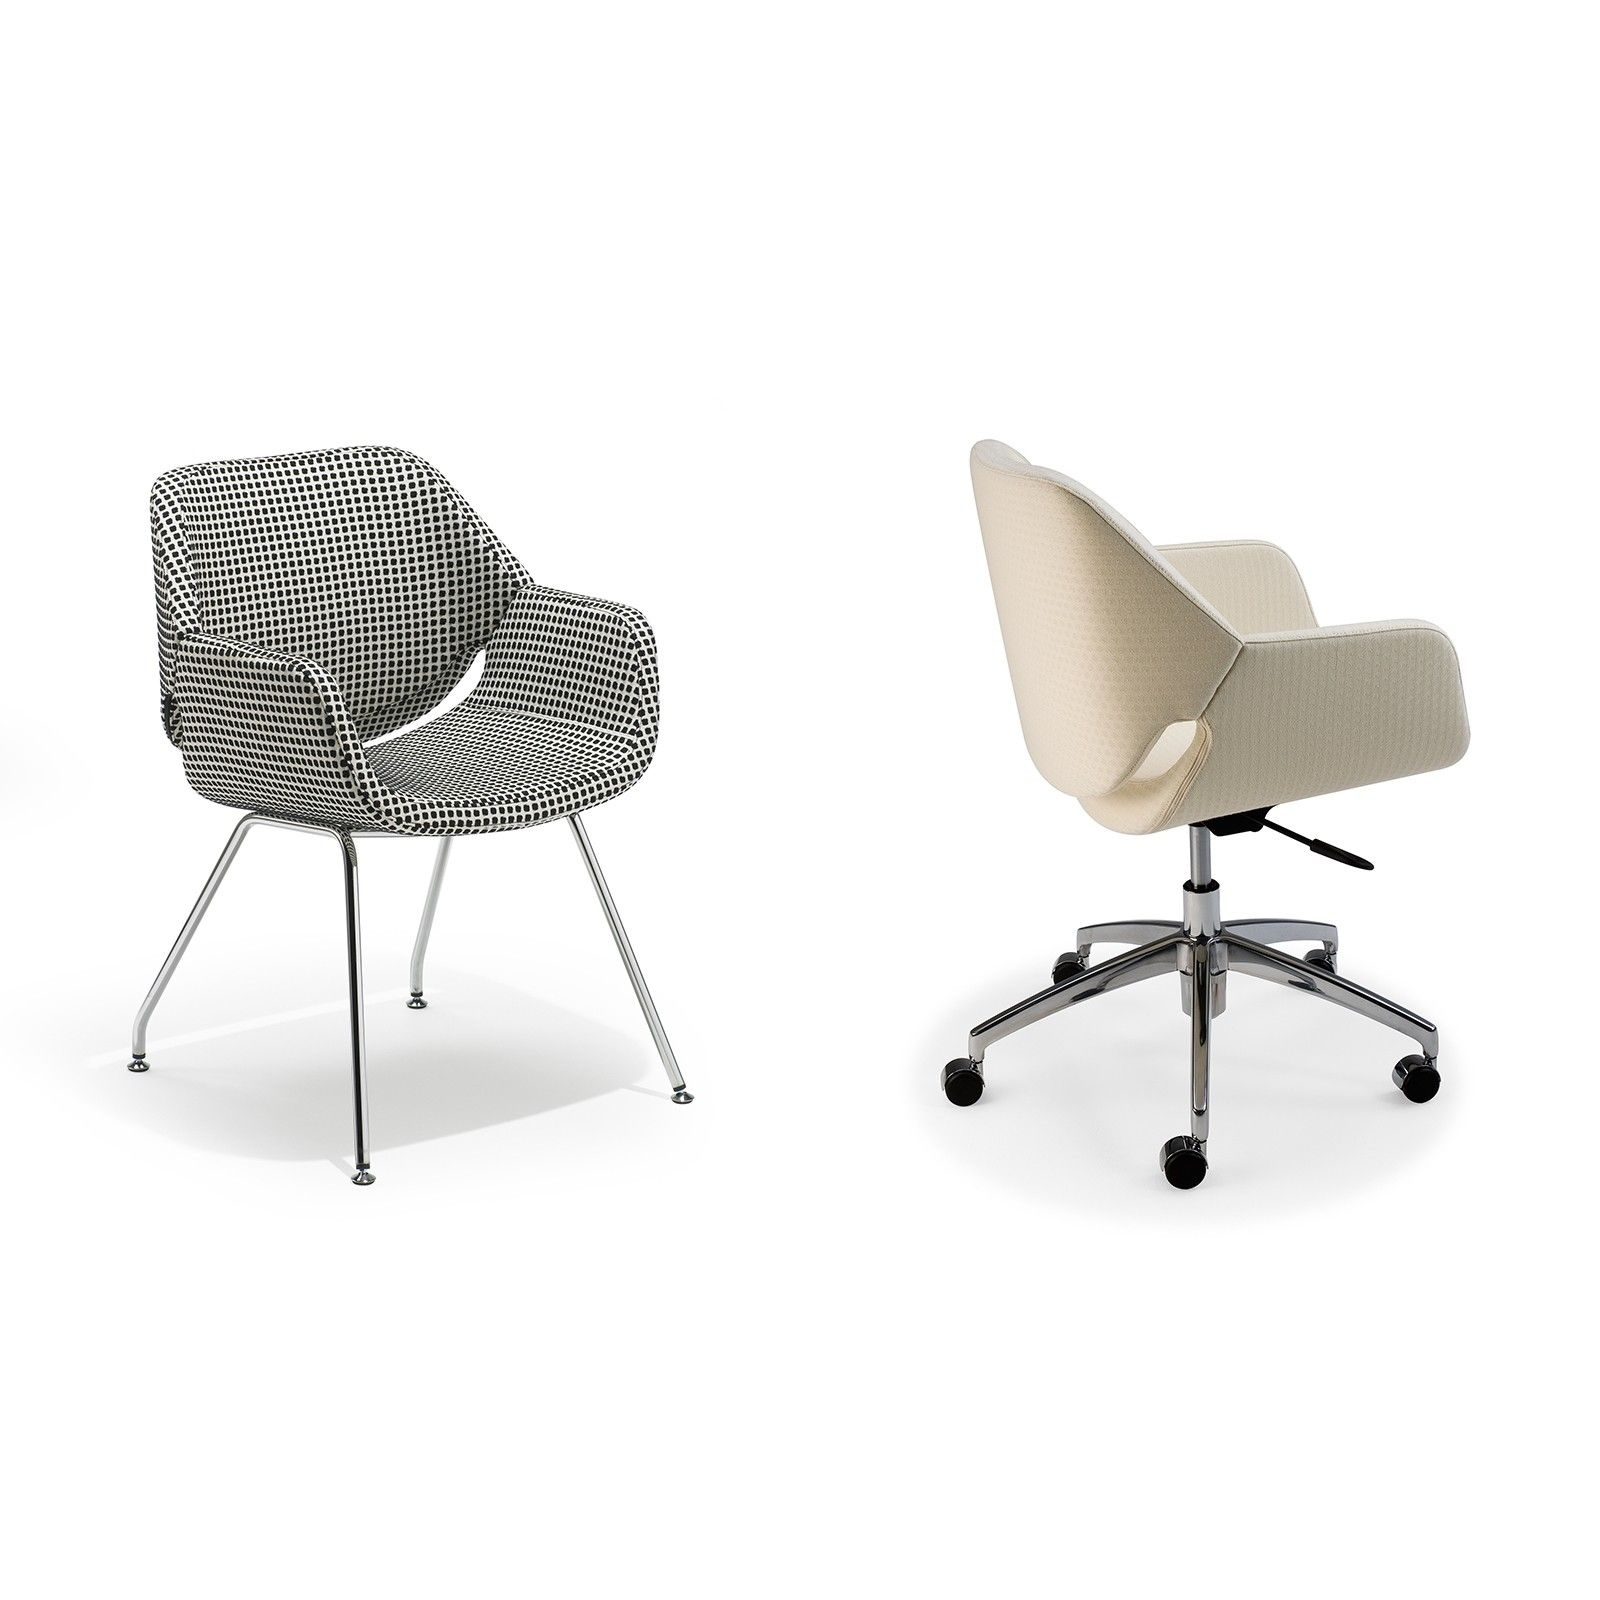 Artifort Ke Zu Furniture Residential And Contract Furniture Sydney Australia With Images Armchair Comfortable Seating Furniture Designer